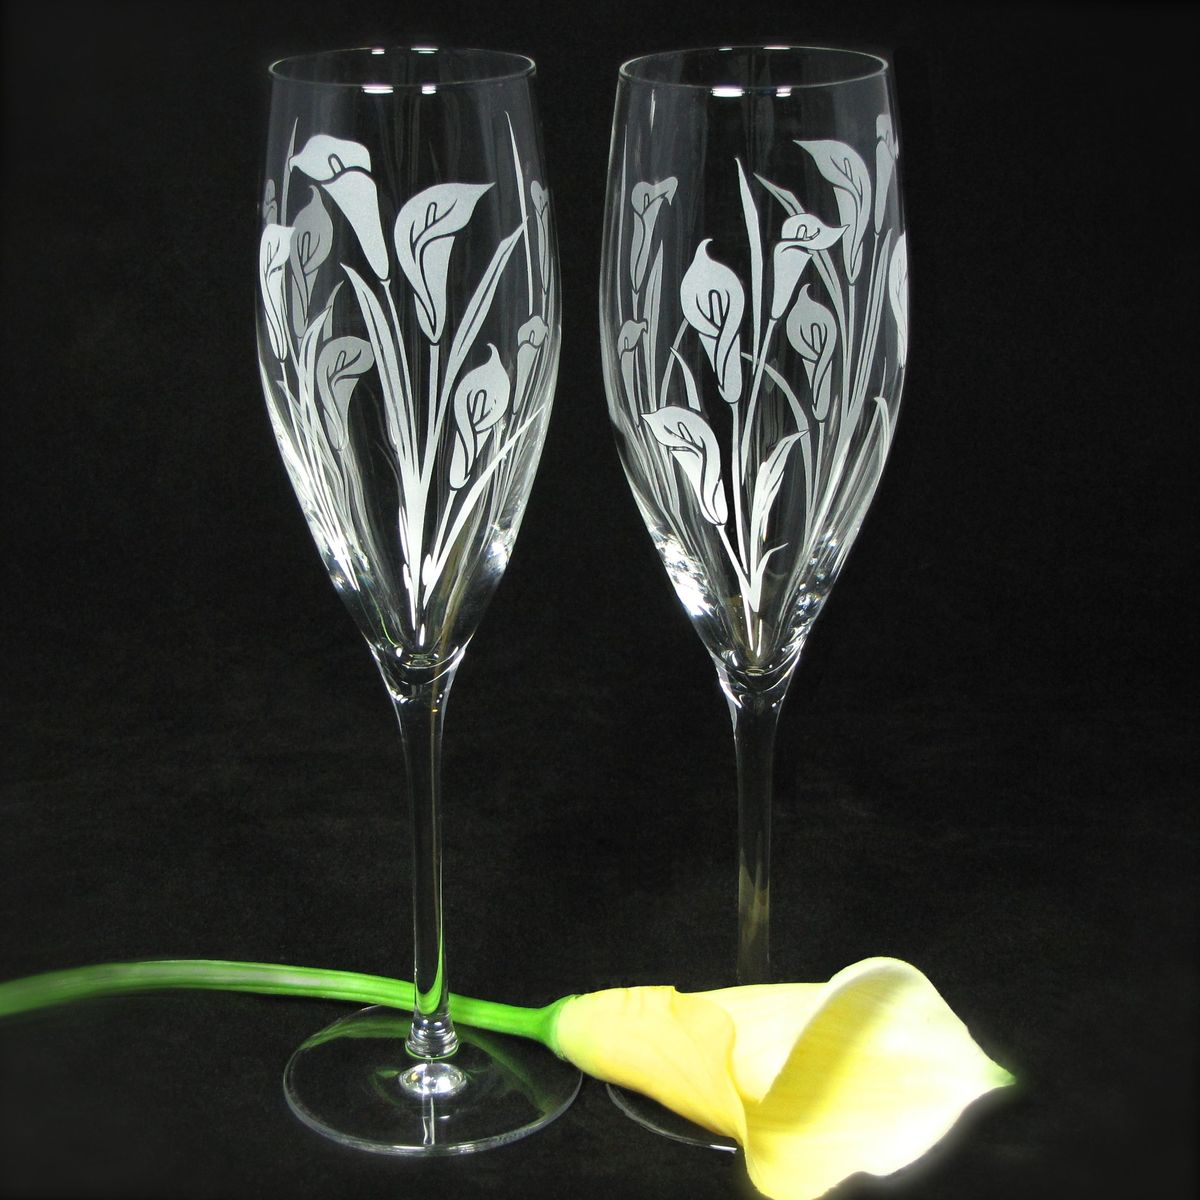 2 toasting flutes with calla lilies personalized champagne glasses wedding gift for bride and. Black Bedroom Furniture Sets. Home Design Ideas